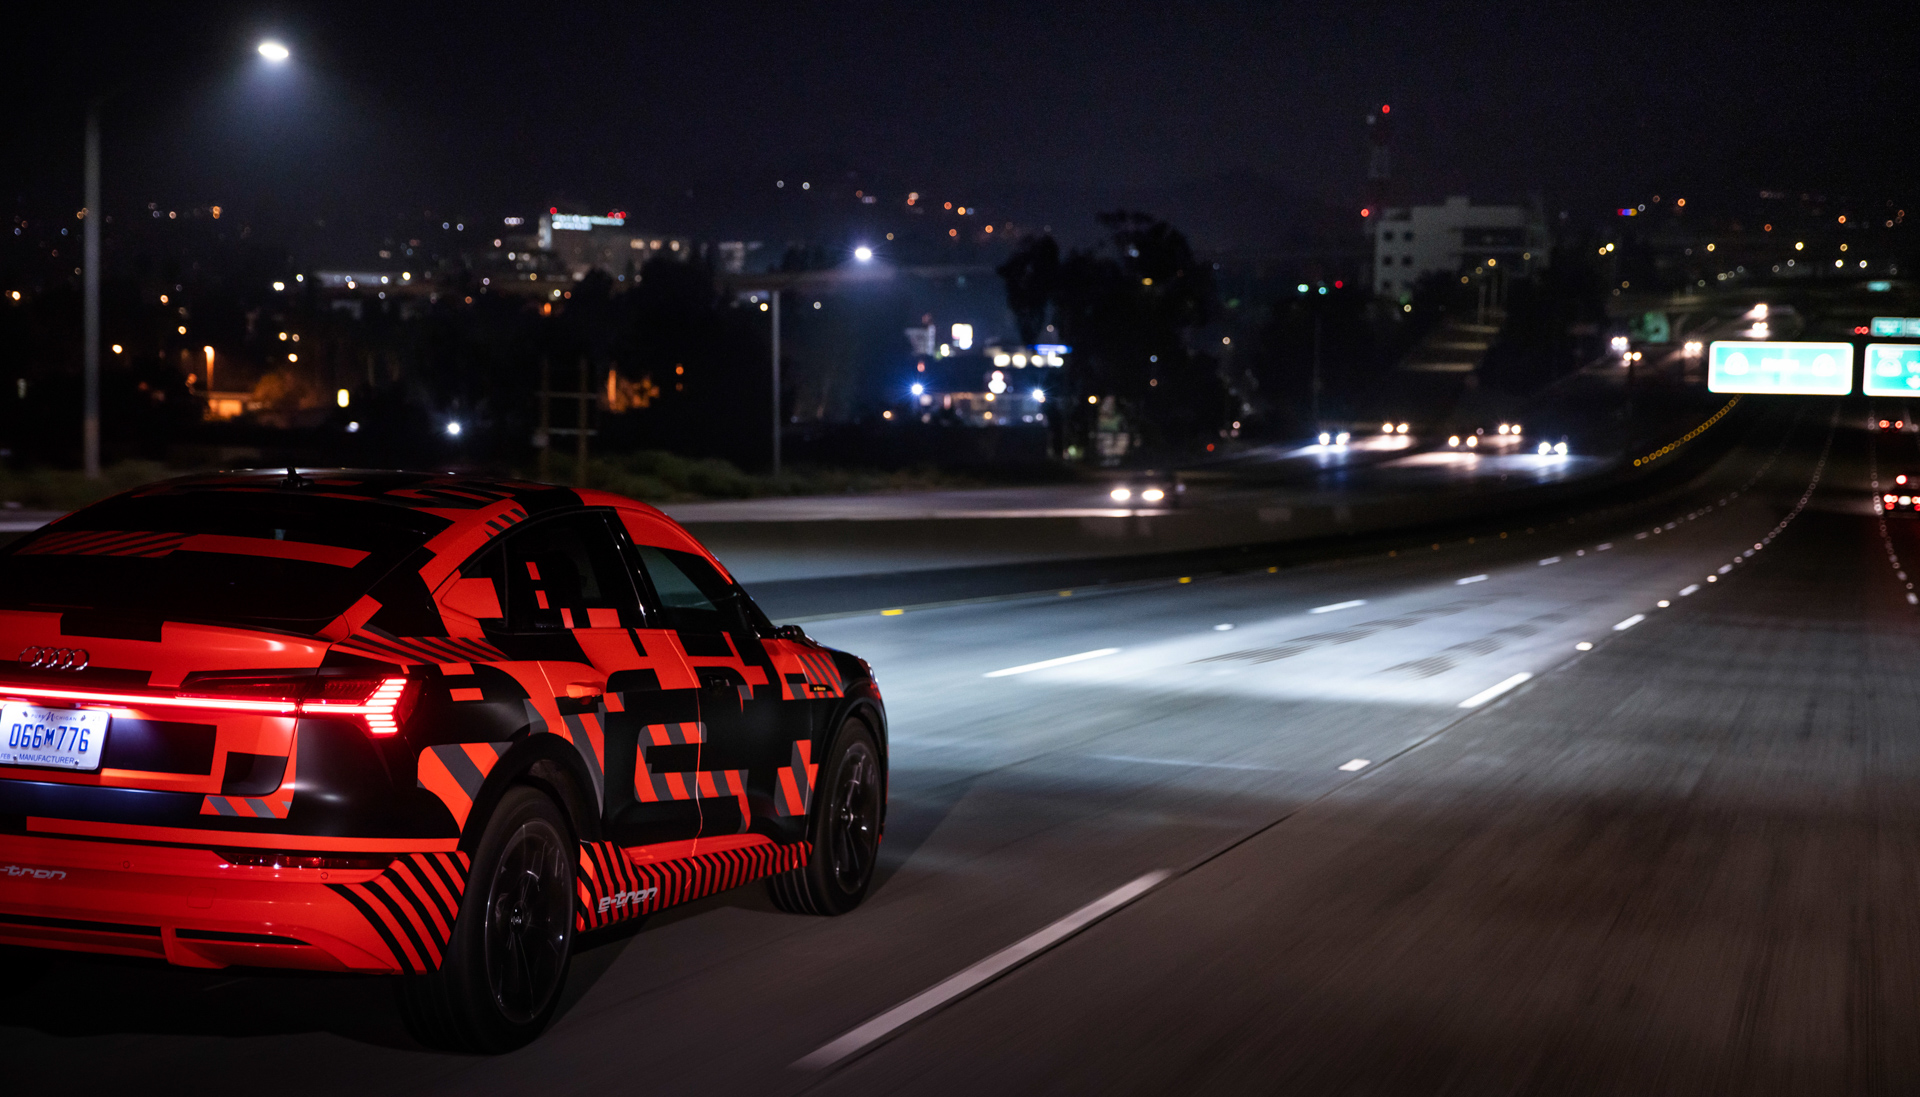 Audi's digital matrix LED headlights debut in the E-Tron Sportback